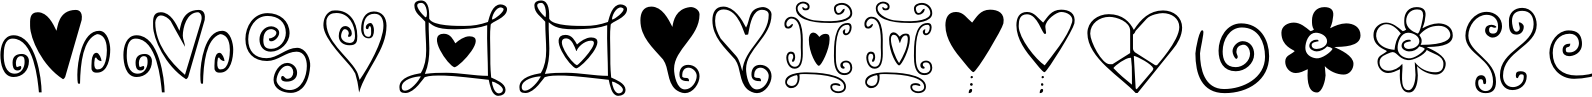 Hearts and Swirls Font